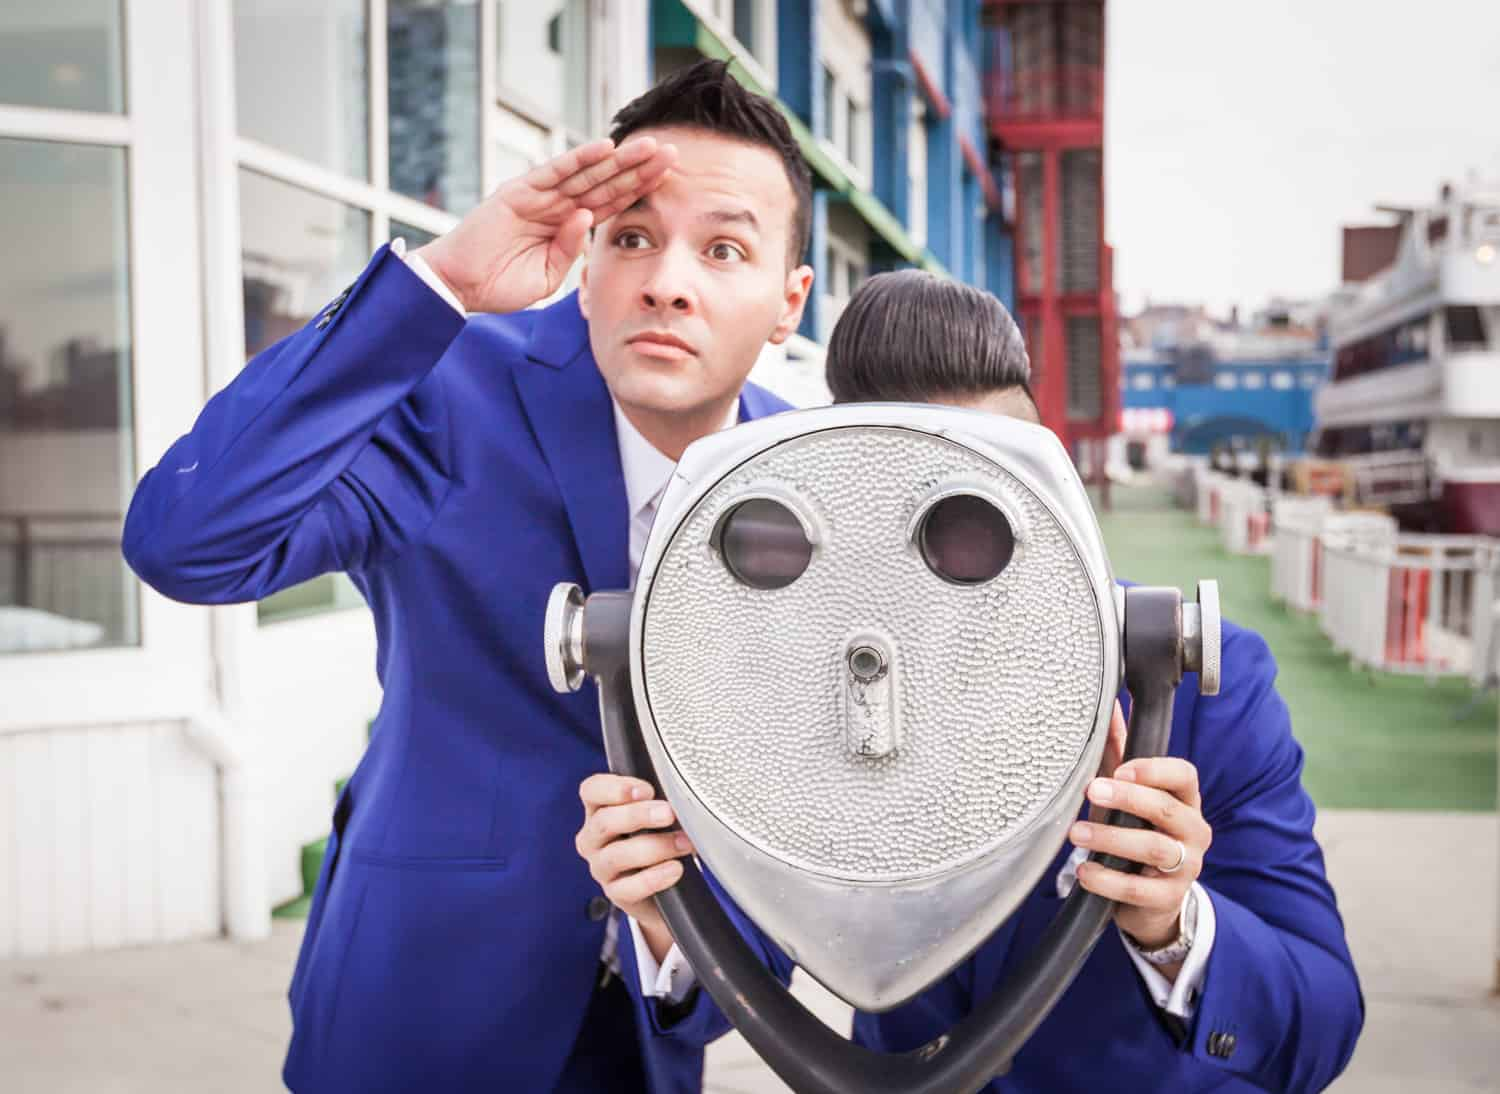 Two grooms playing with view master at Chelsea Piers